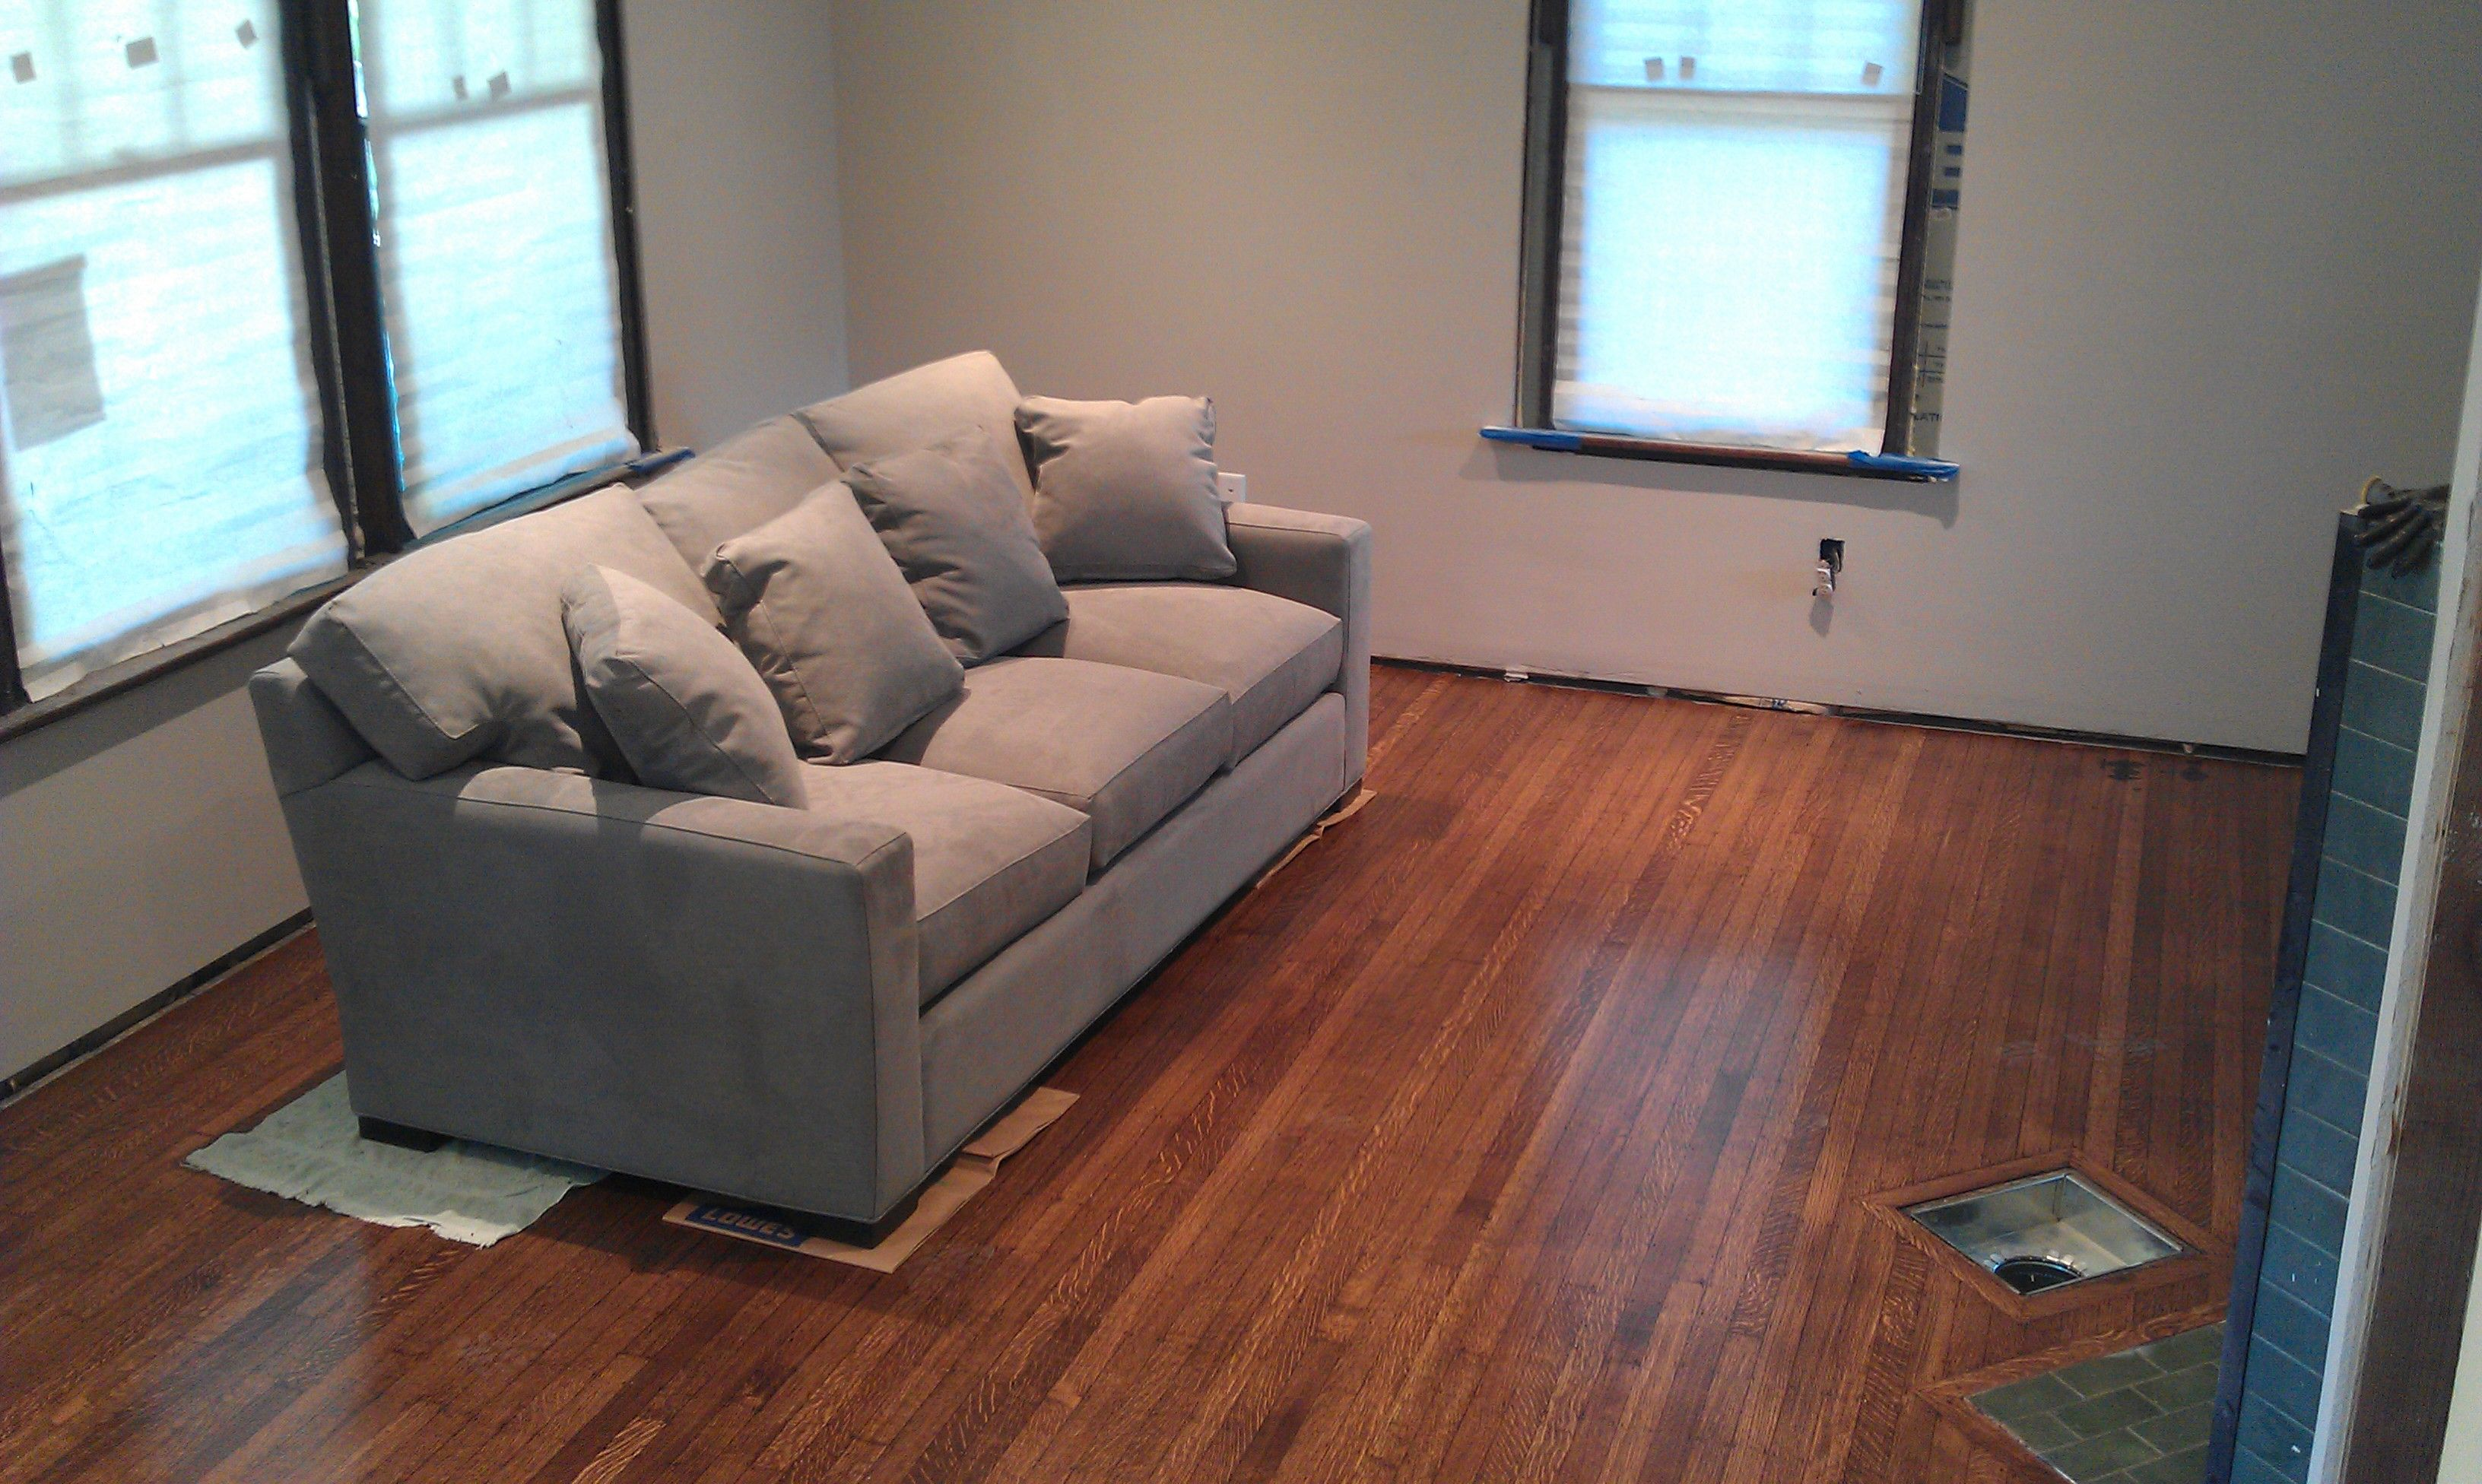 Menards Living Room Furniture Crate And Barrel Couch Axis In Charcoal Floors Refinished With